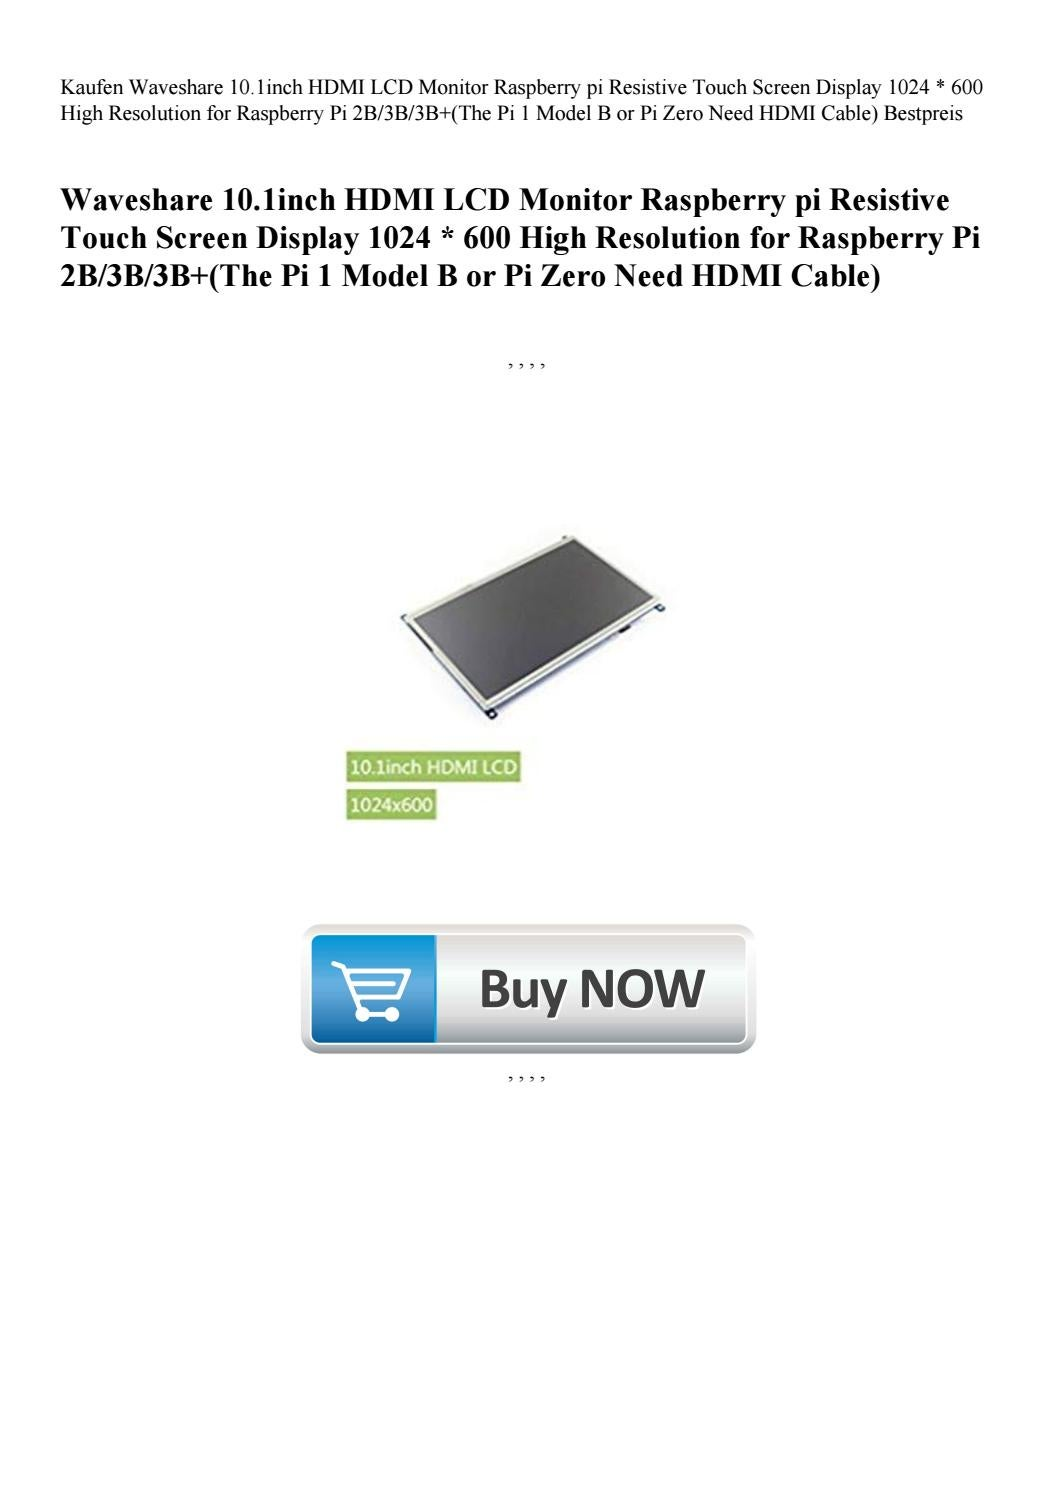 10.1inch HDMI LCD 1024×600 Resistive Touch Screen LCD for any of Raspberry Pi